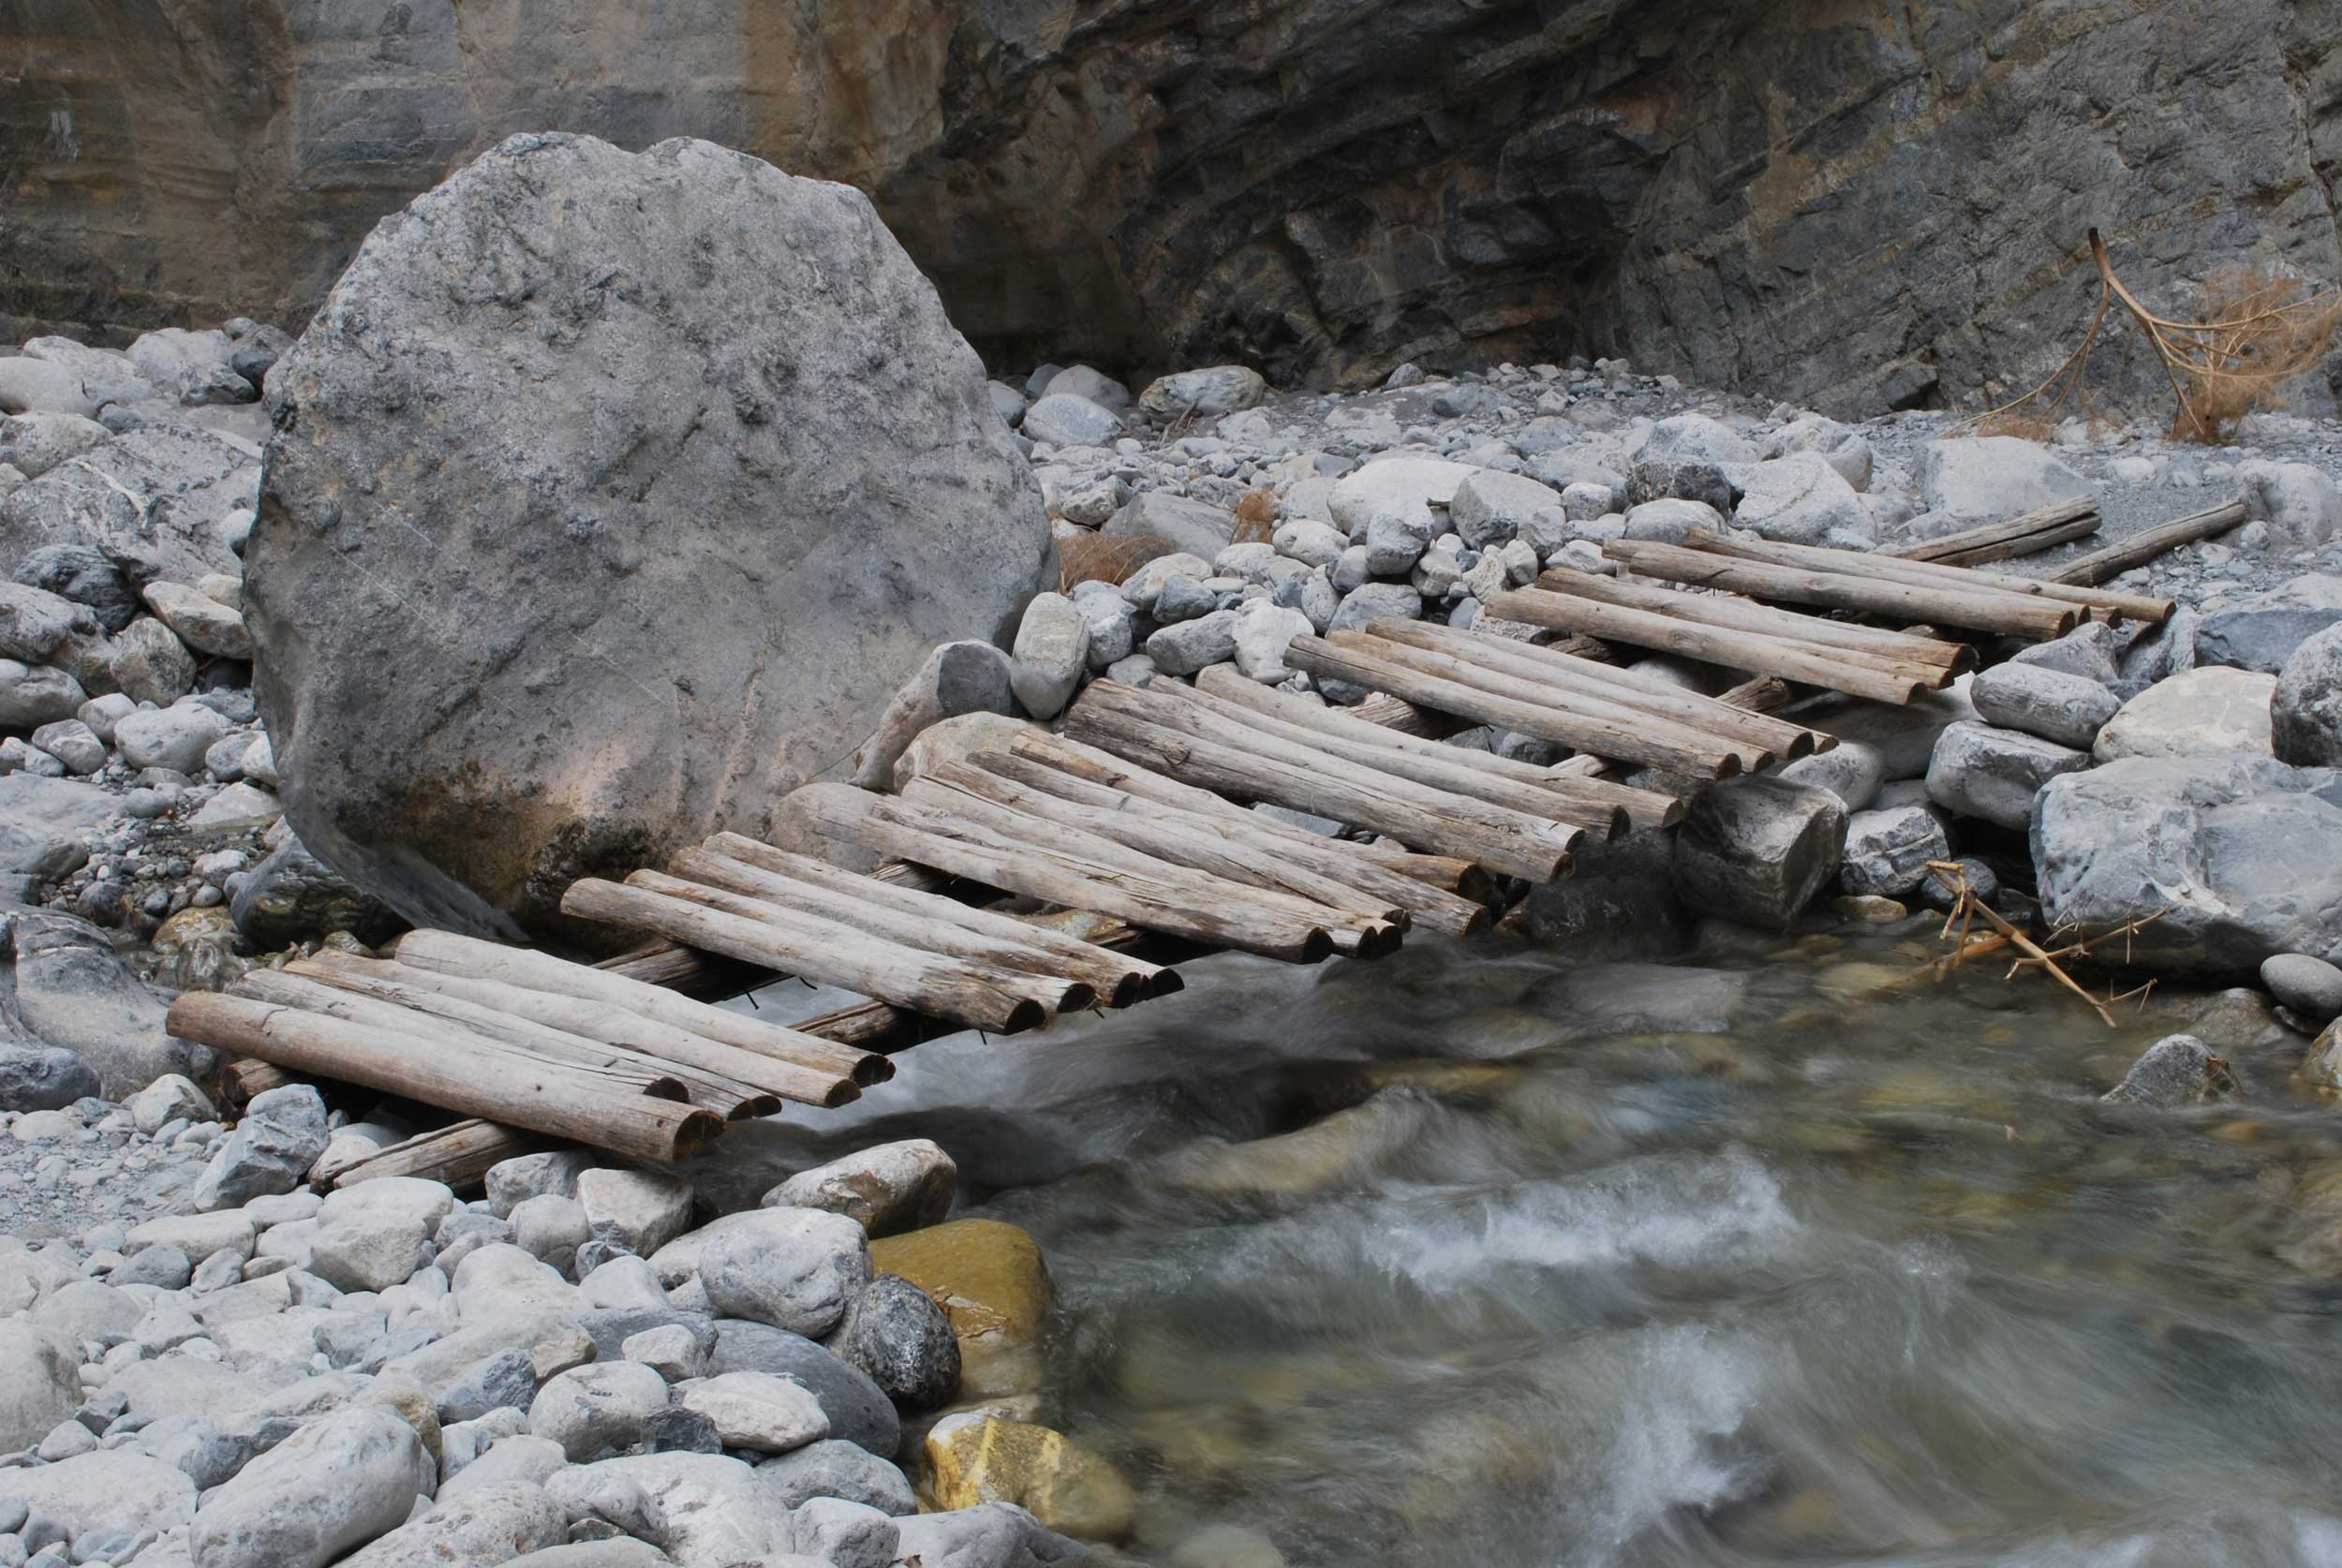 A makeshift wooden bridge fording a stream by a huge boulder in the Samaria Gorge, Crete